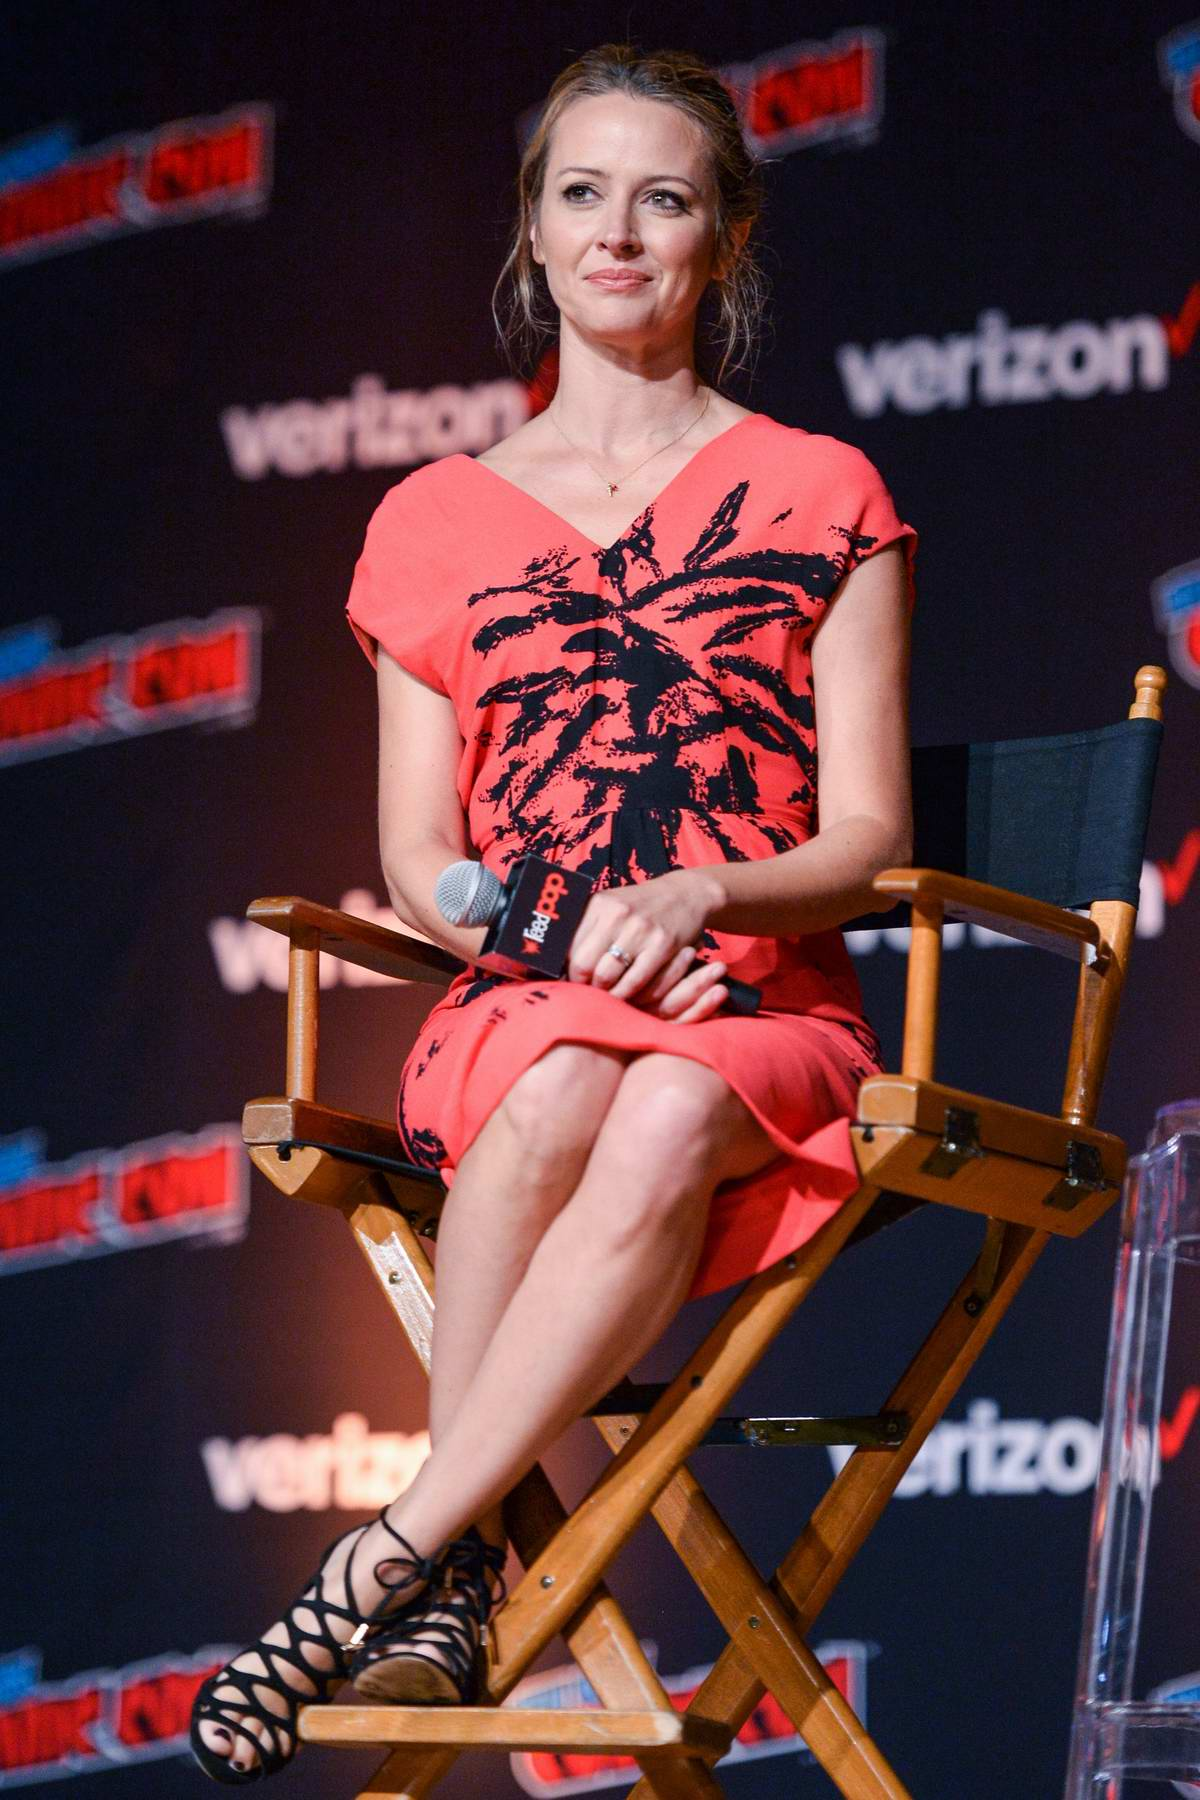 Amy Acker attends 'The Gifted' panel during New York Comic Con 2018 (NYCC 2018) in New York City